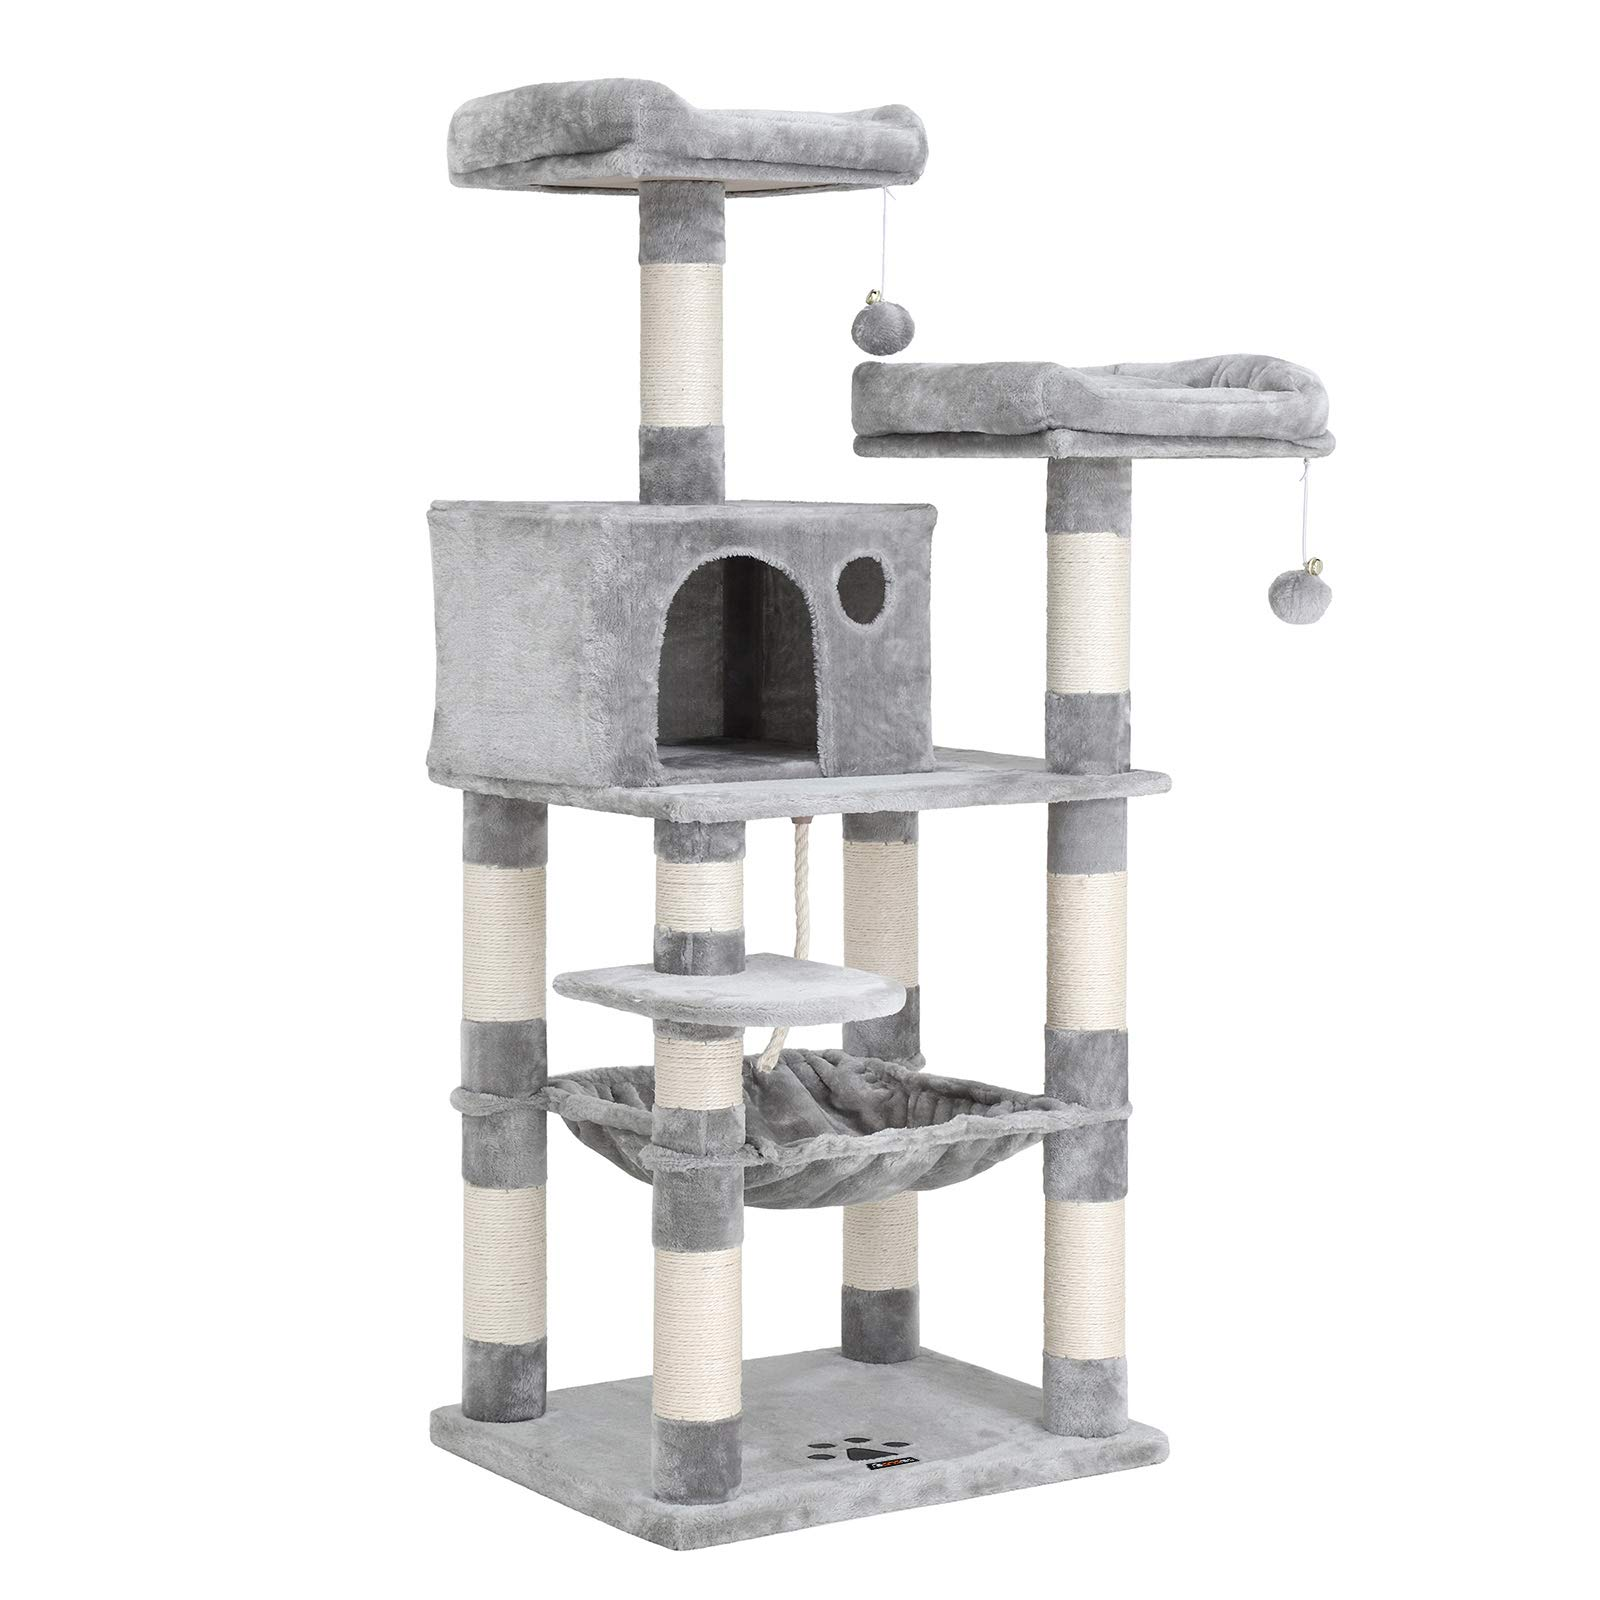 FEANDREA 58 inches Multi-Level Cat Tree with Hammock, Cat Tower for Large Cats UPCT15W by FEANDREA